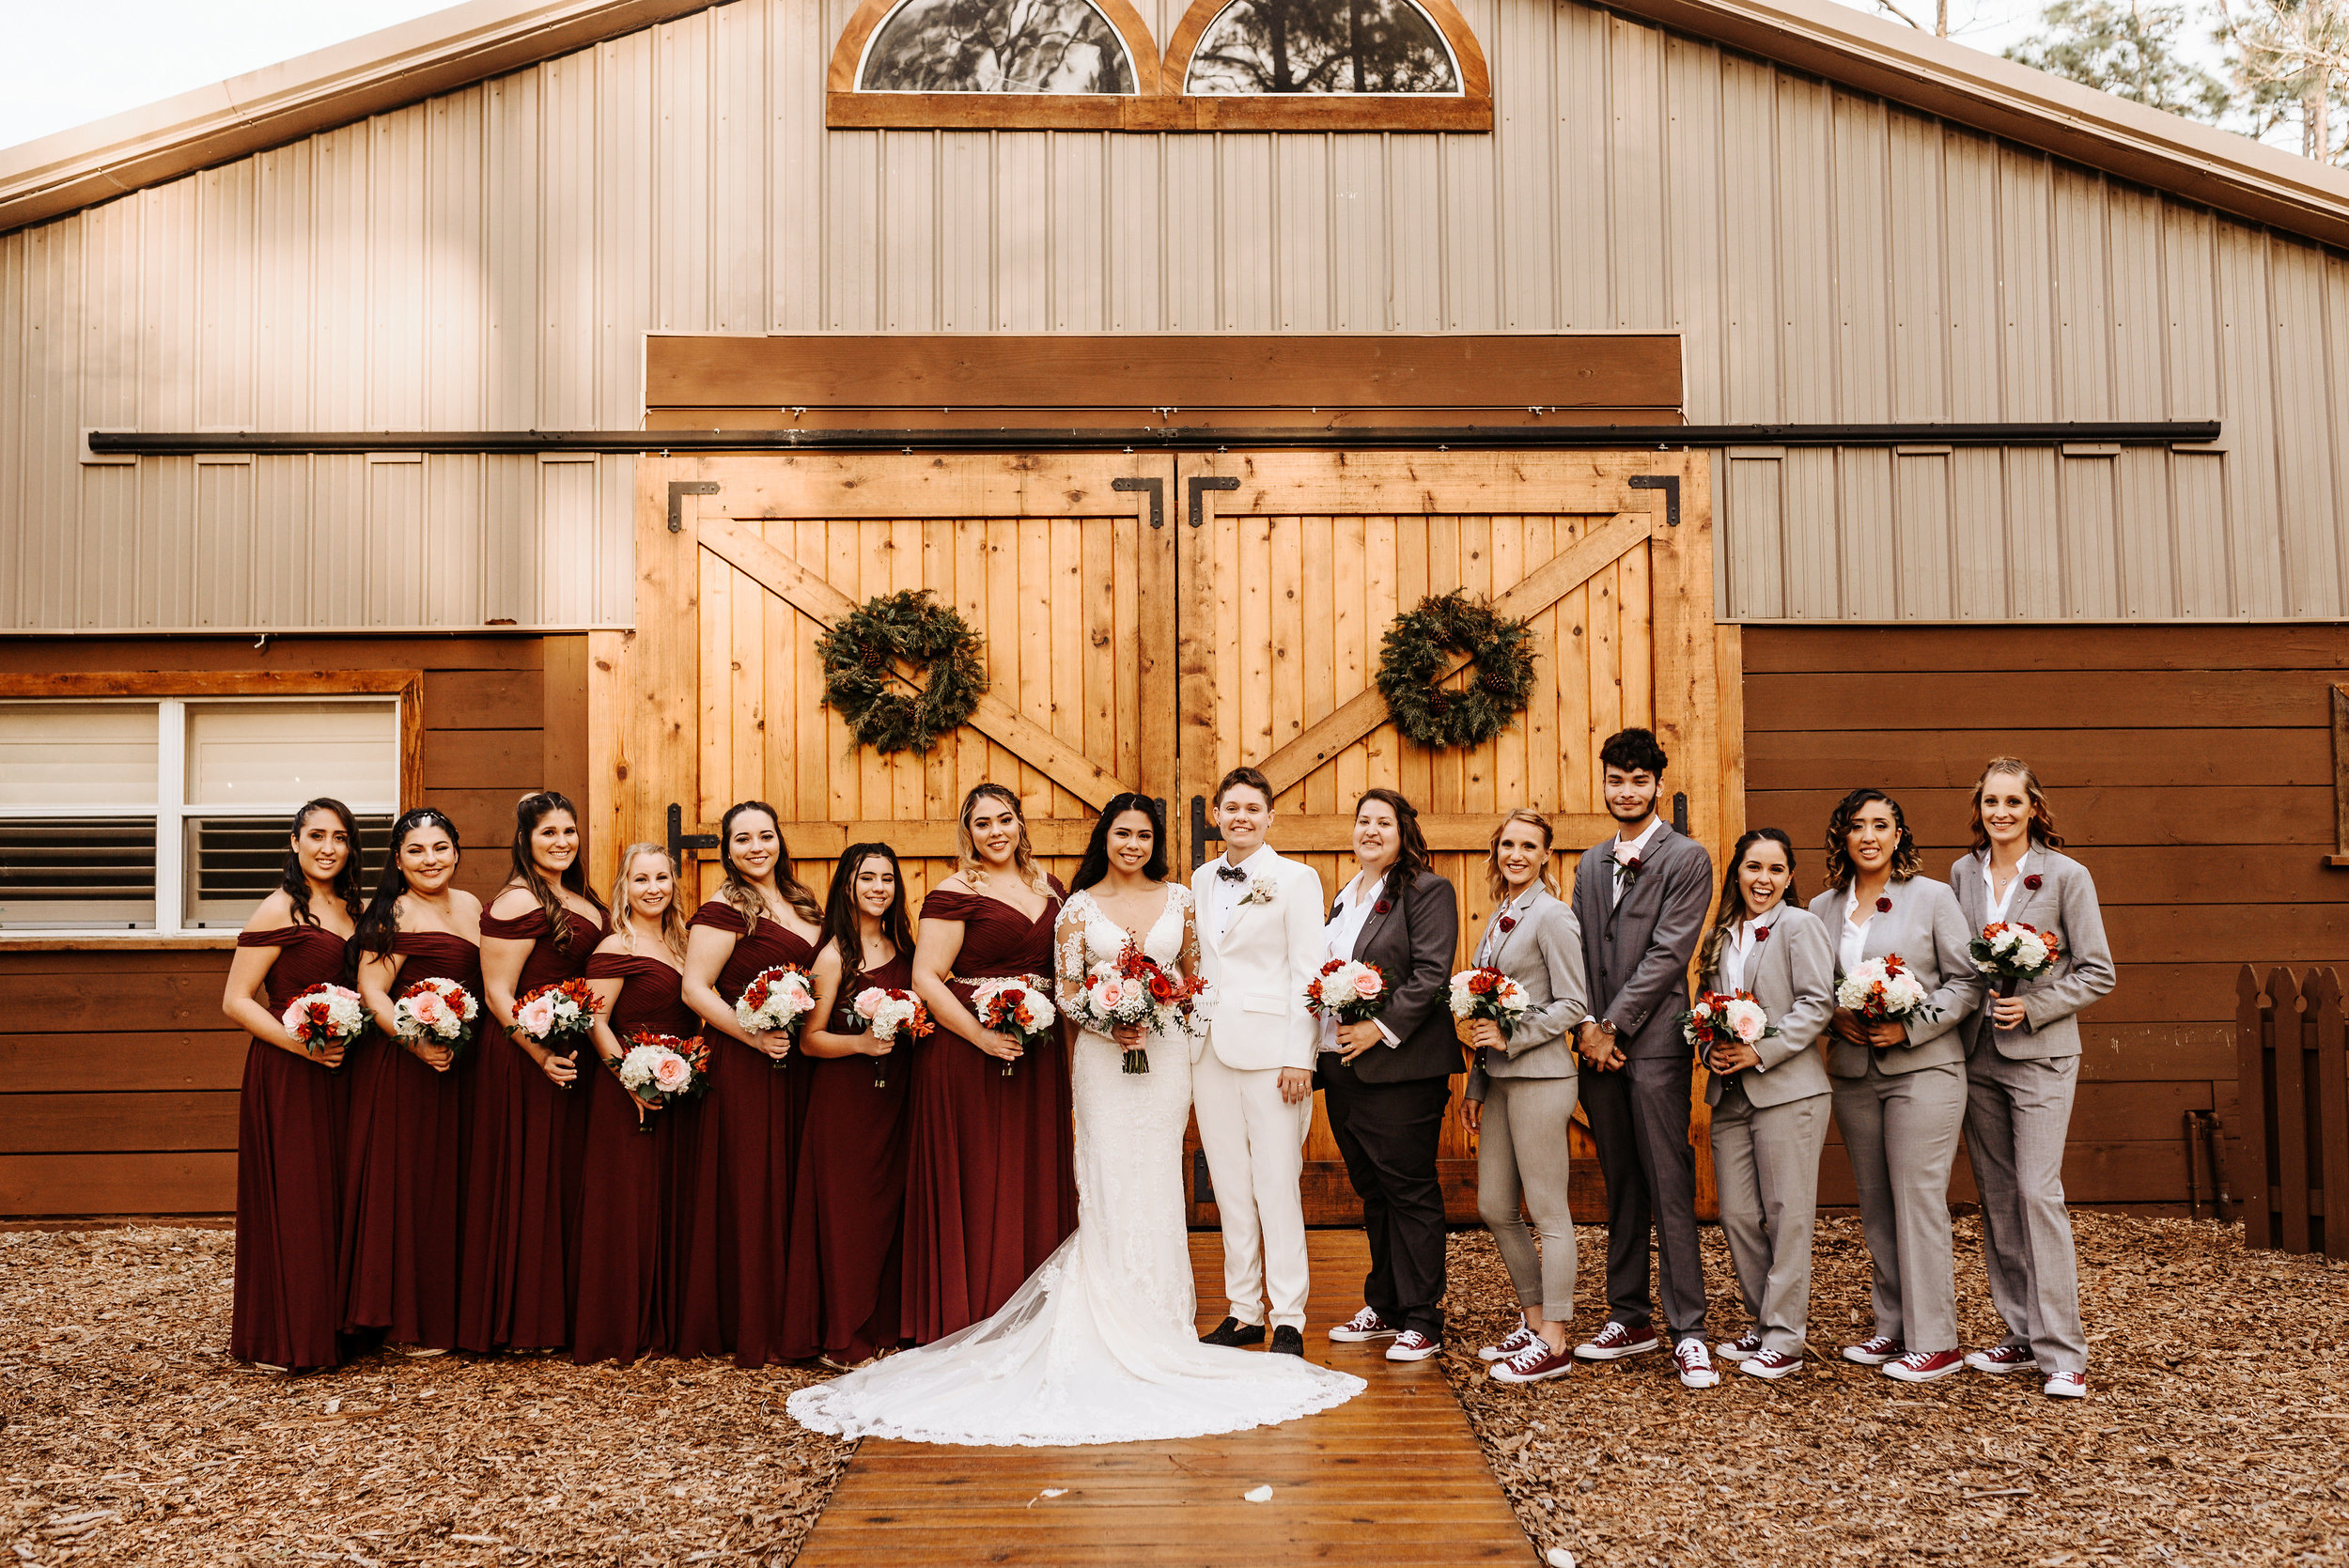 Alexia_Celeste_Wedding_Cielo_Blu_Barn_Photography_by_V_6500.jpg